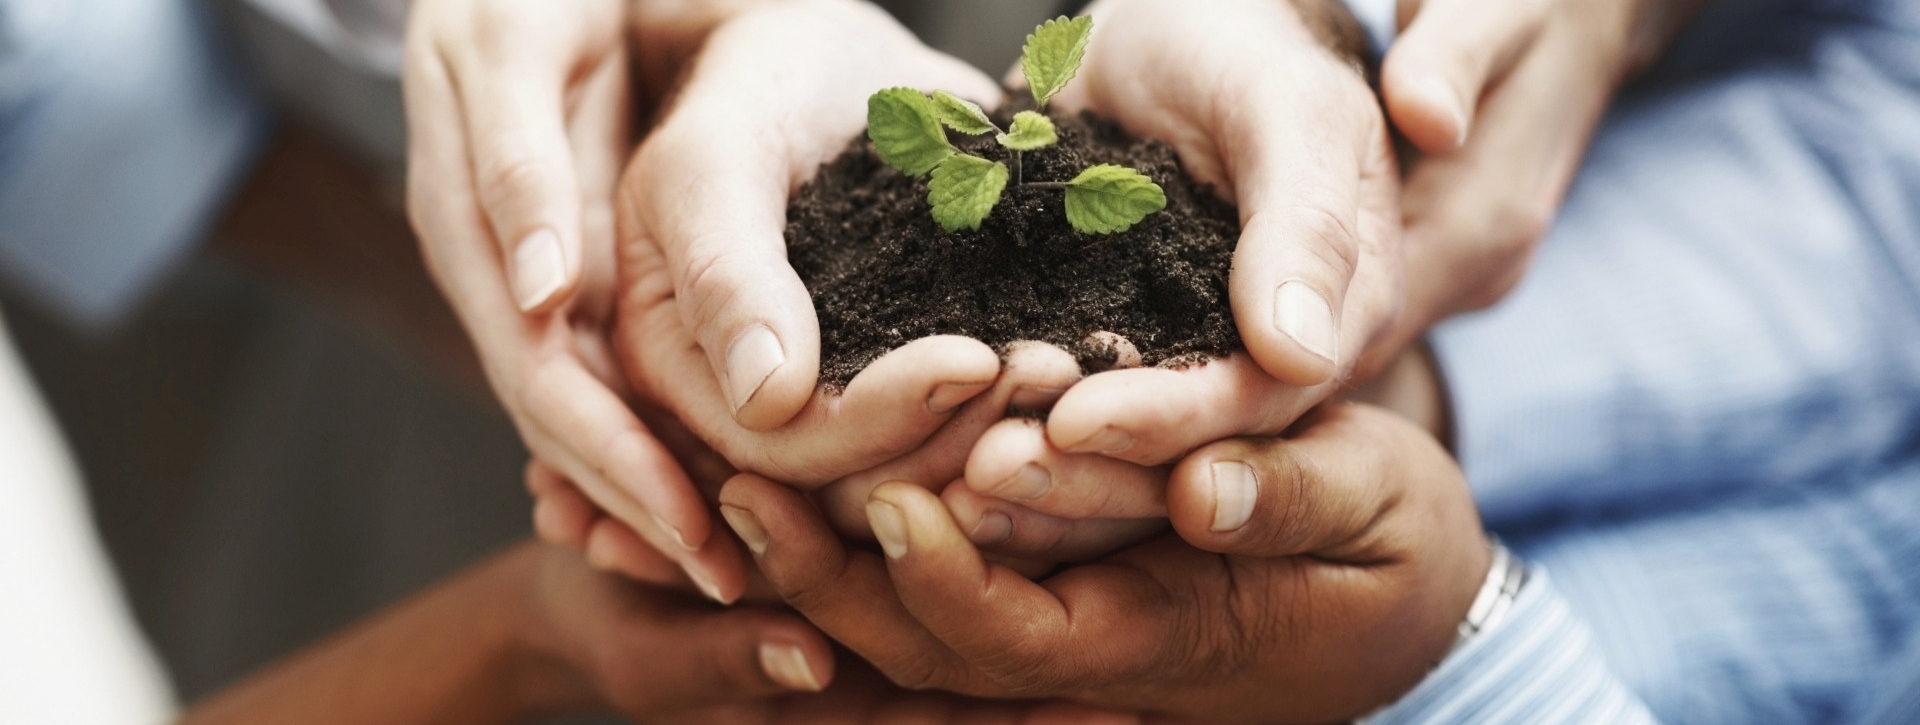 Hands holding earth and sprouting plant